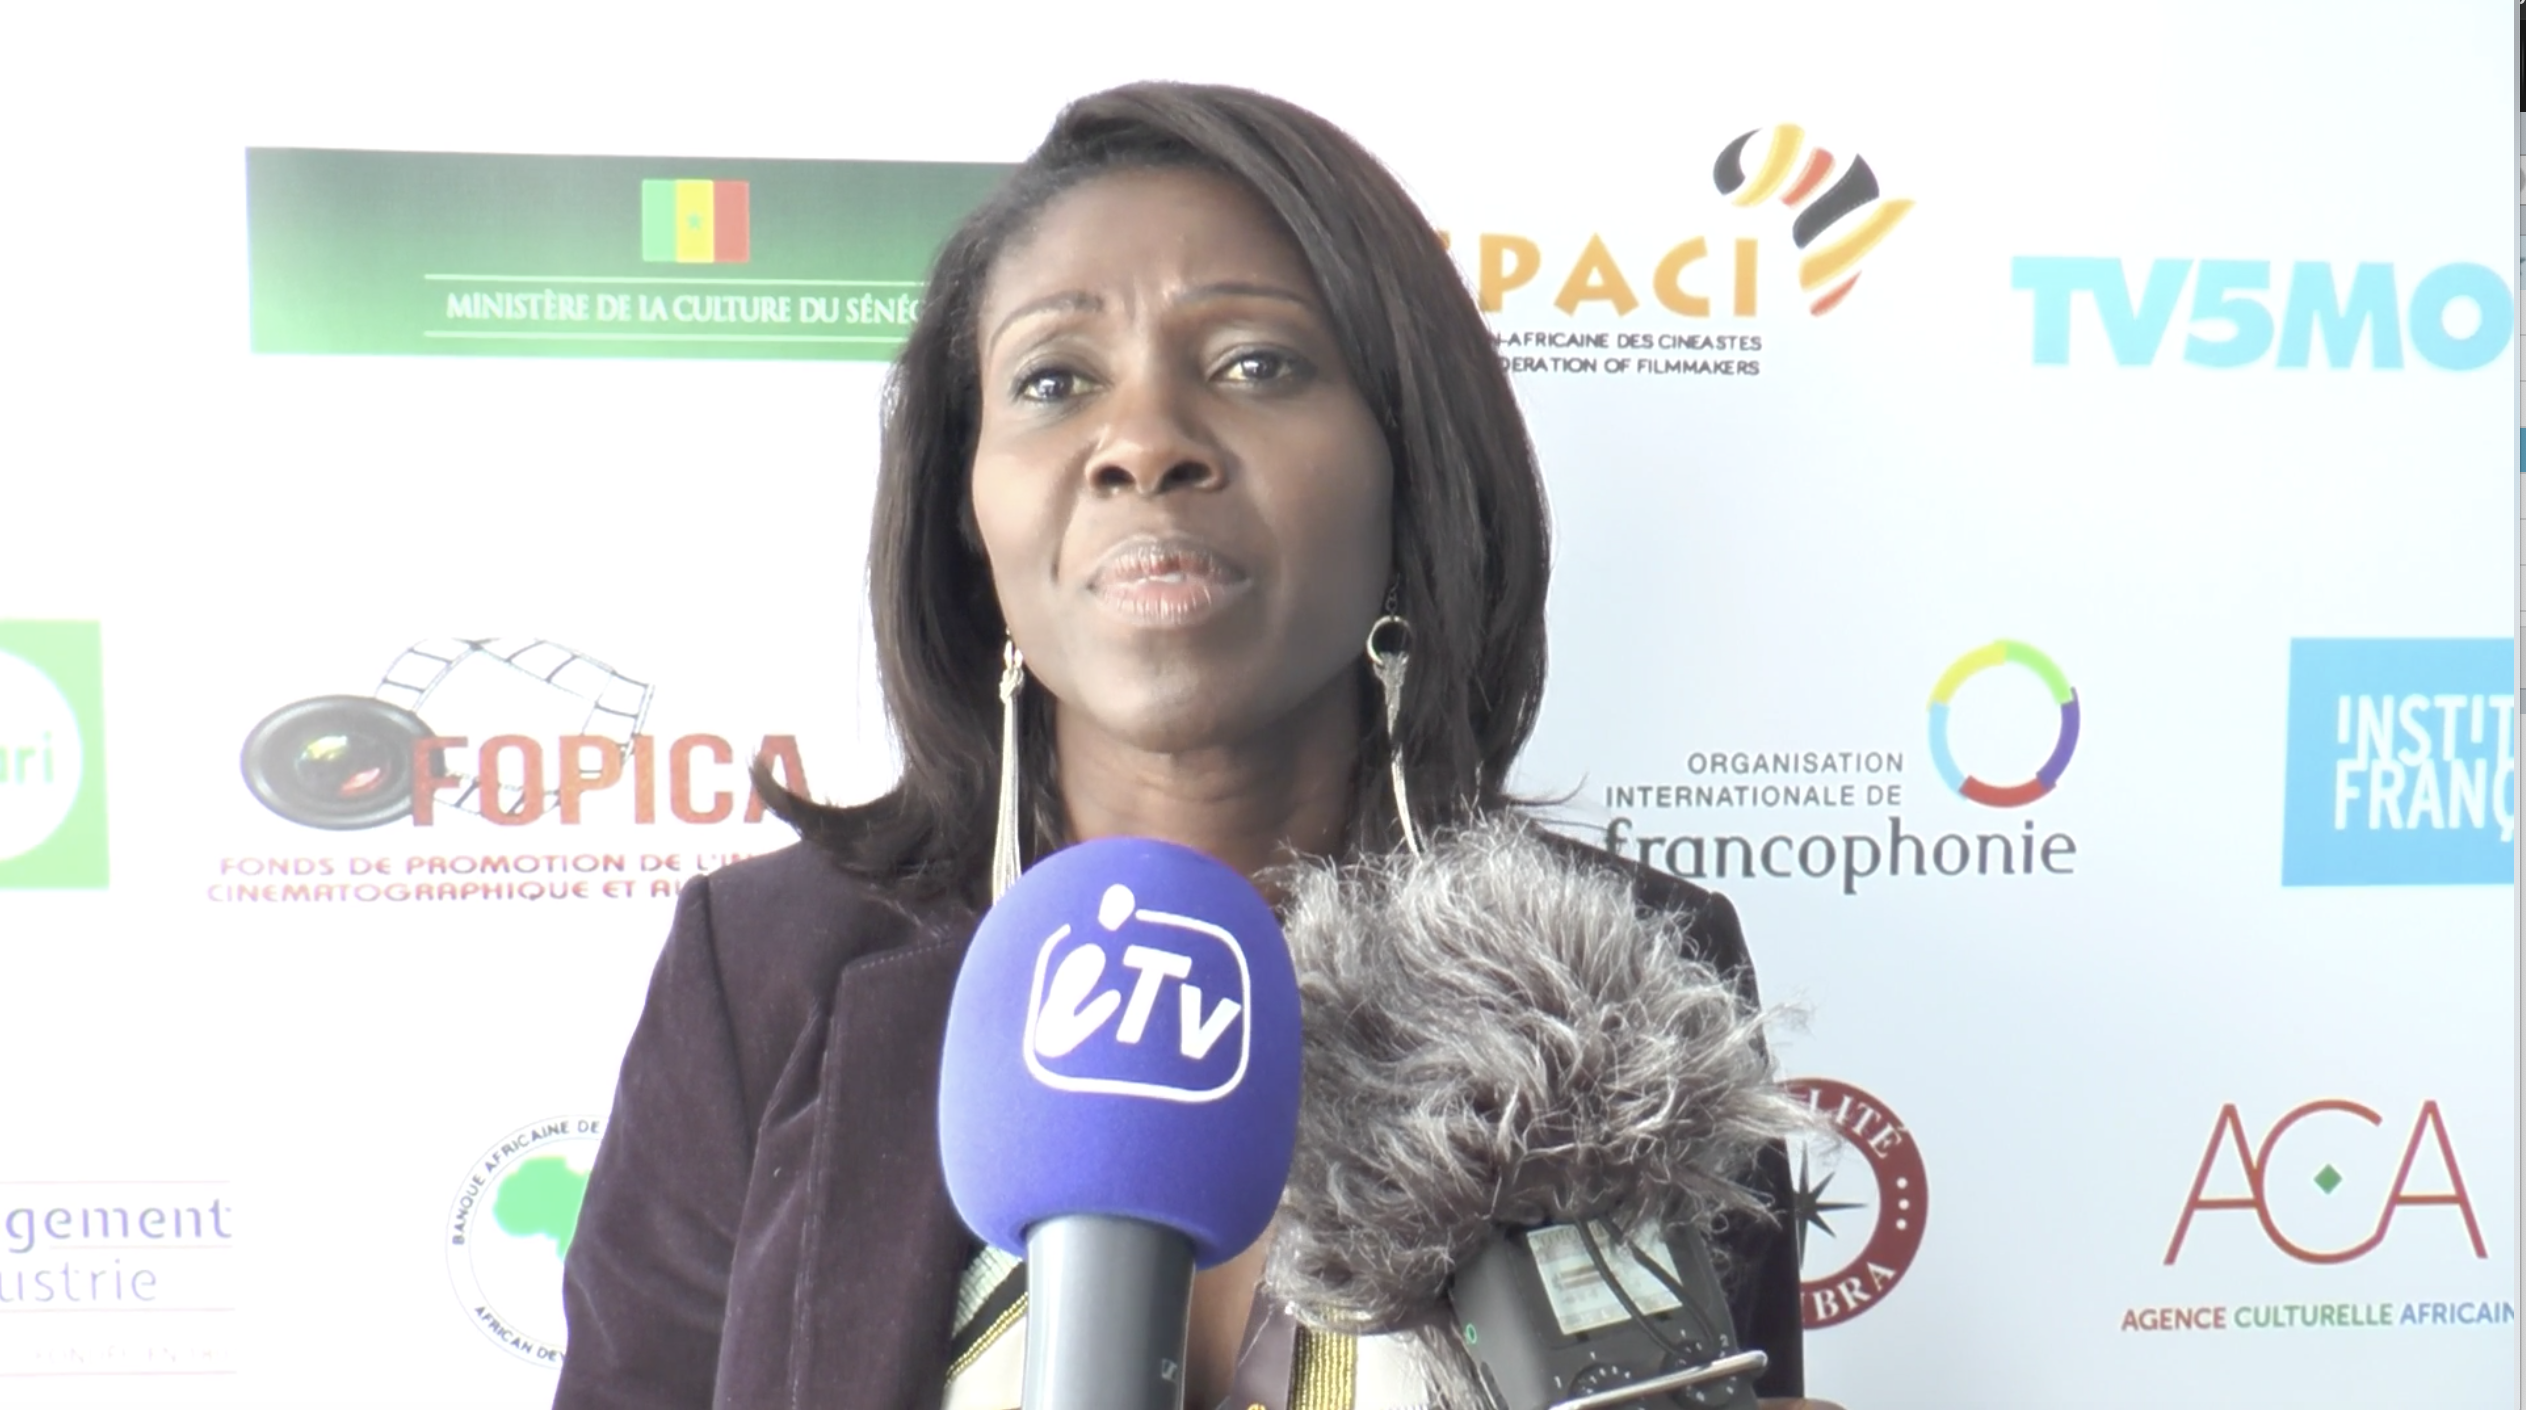 VIDEO - AMINATA DIOP JOHNSON : « VALORISER L'INDUSTRIE CULTURELLE AFRICAINE »